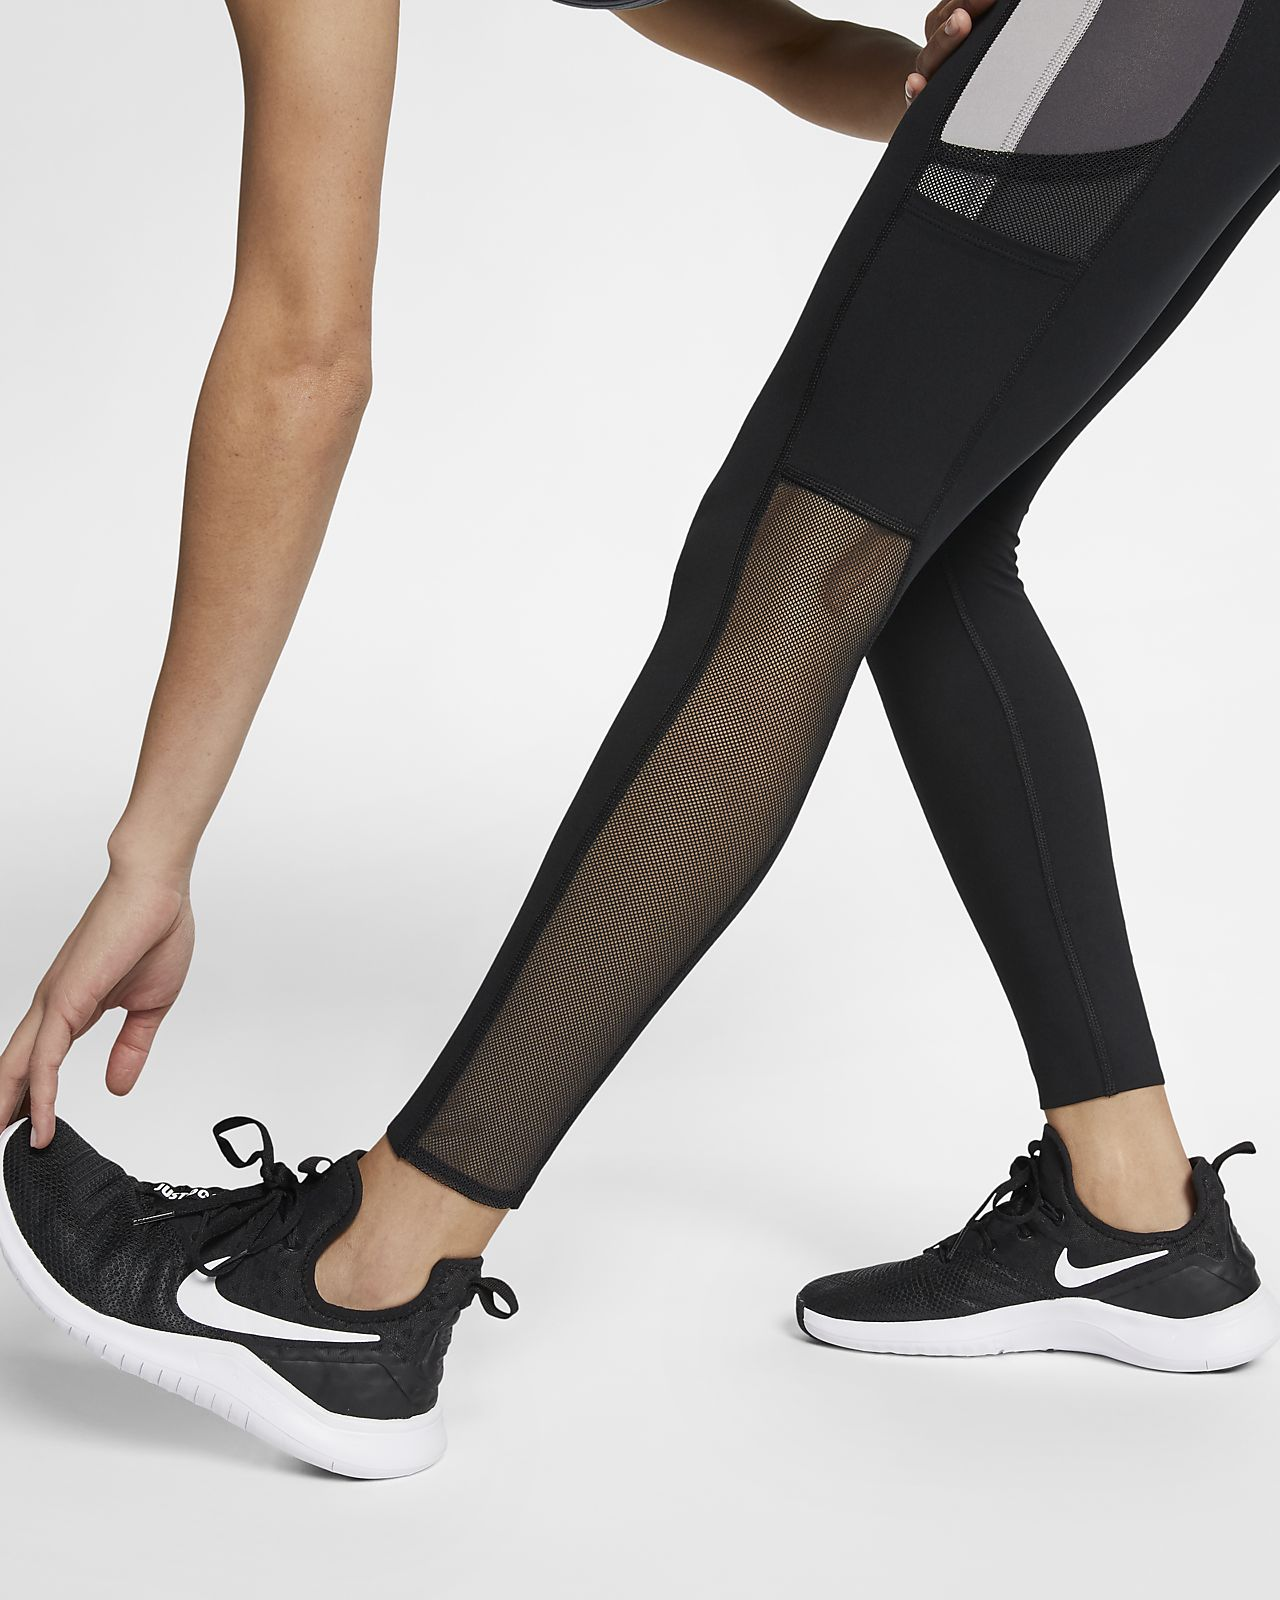 bc333173c1 Nike One Women s 7 8 Training Tights. Nike.com AU